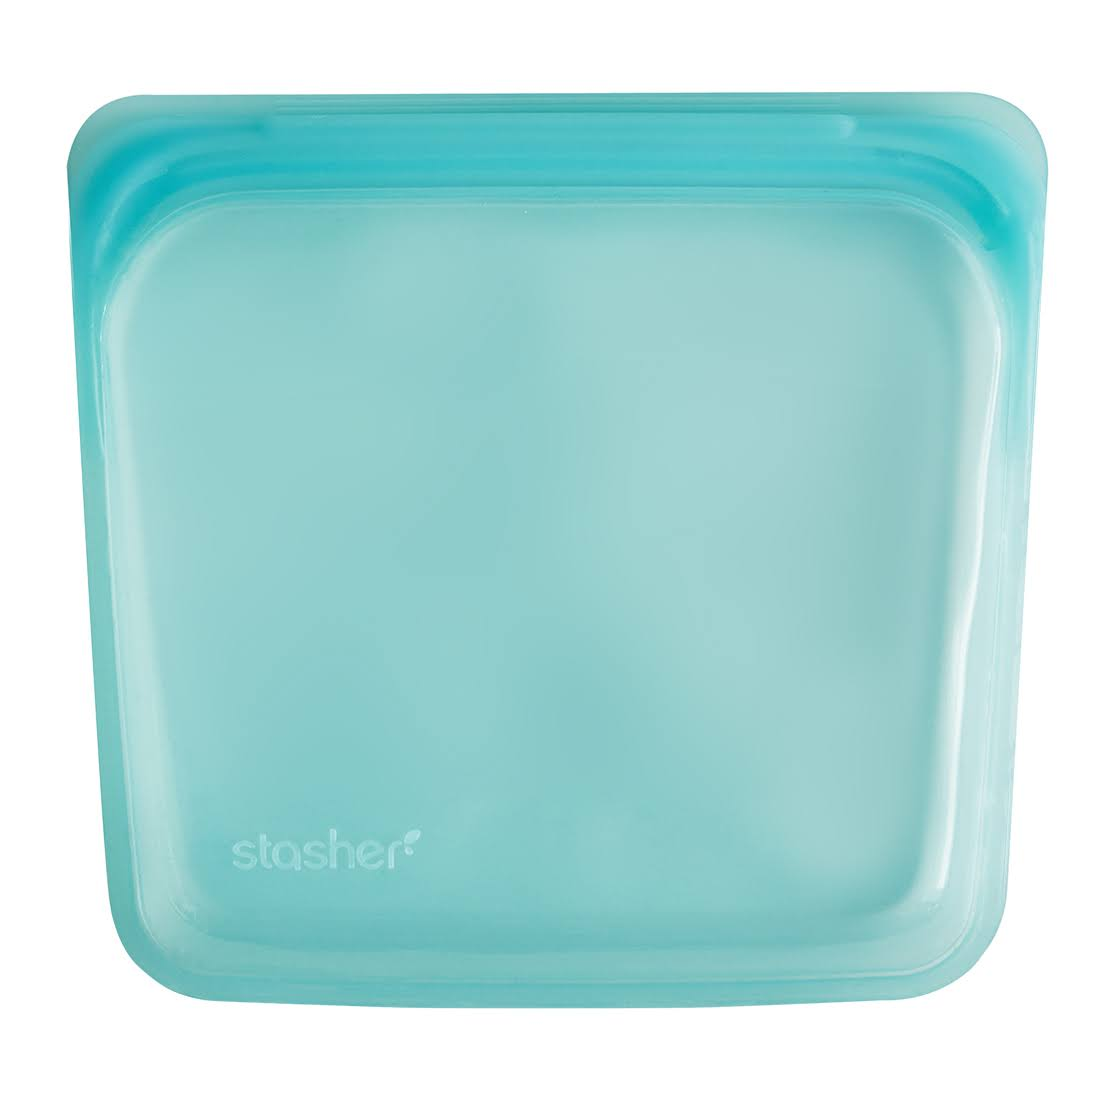 Stasher Reusable Silicone Food Bag - Aqua